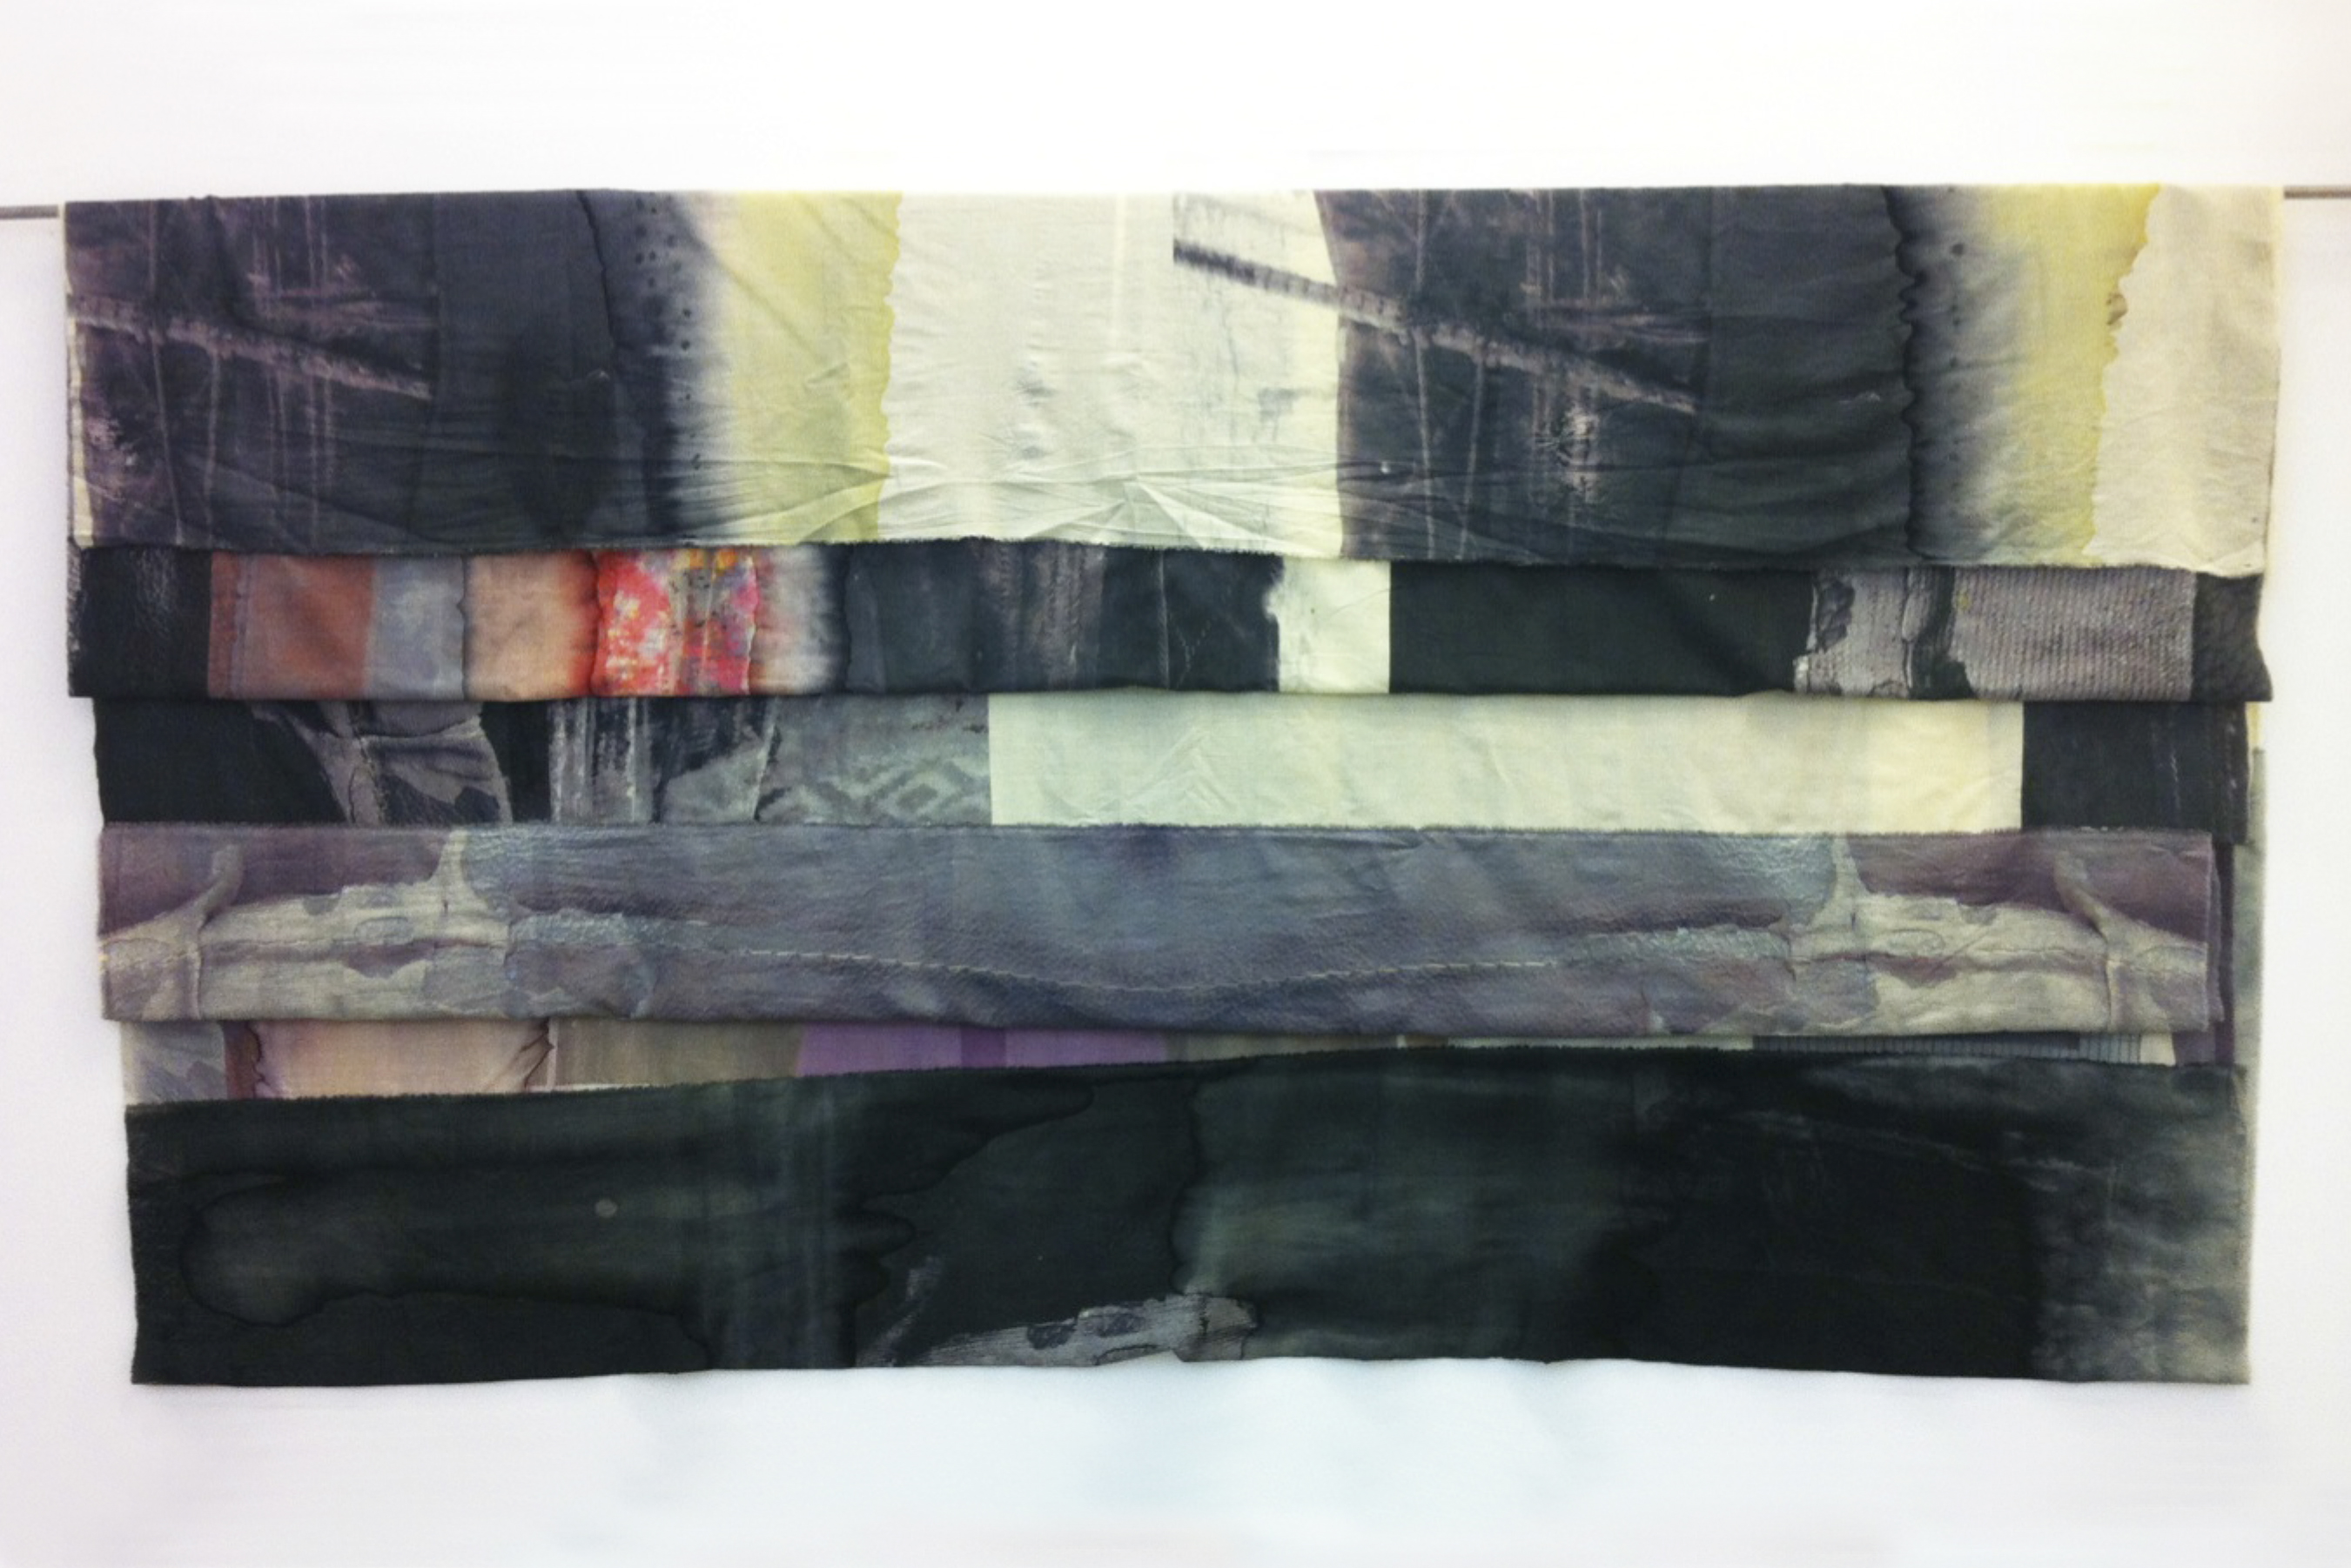 They Will Reoccur And Disappear, But Exist Forever III 2012 Printed and folded wool, wall hangings 380x170cm